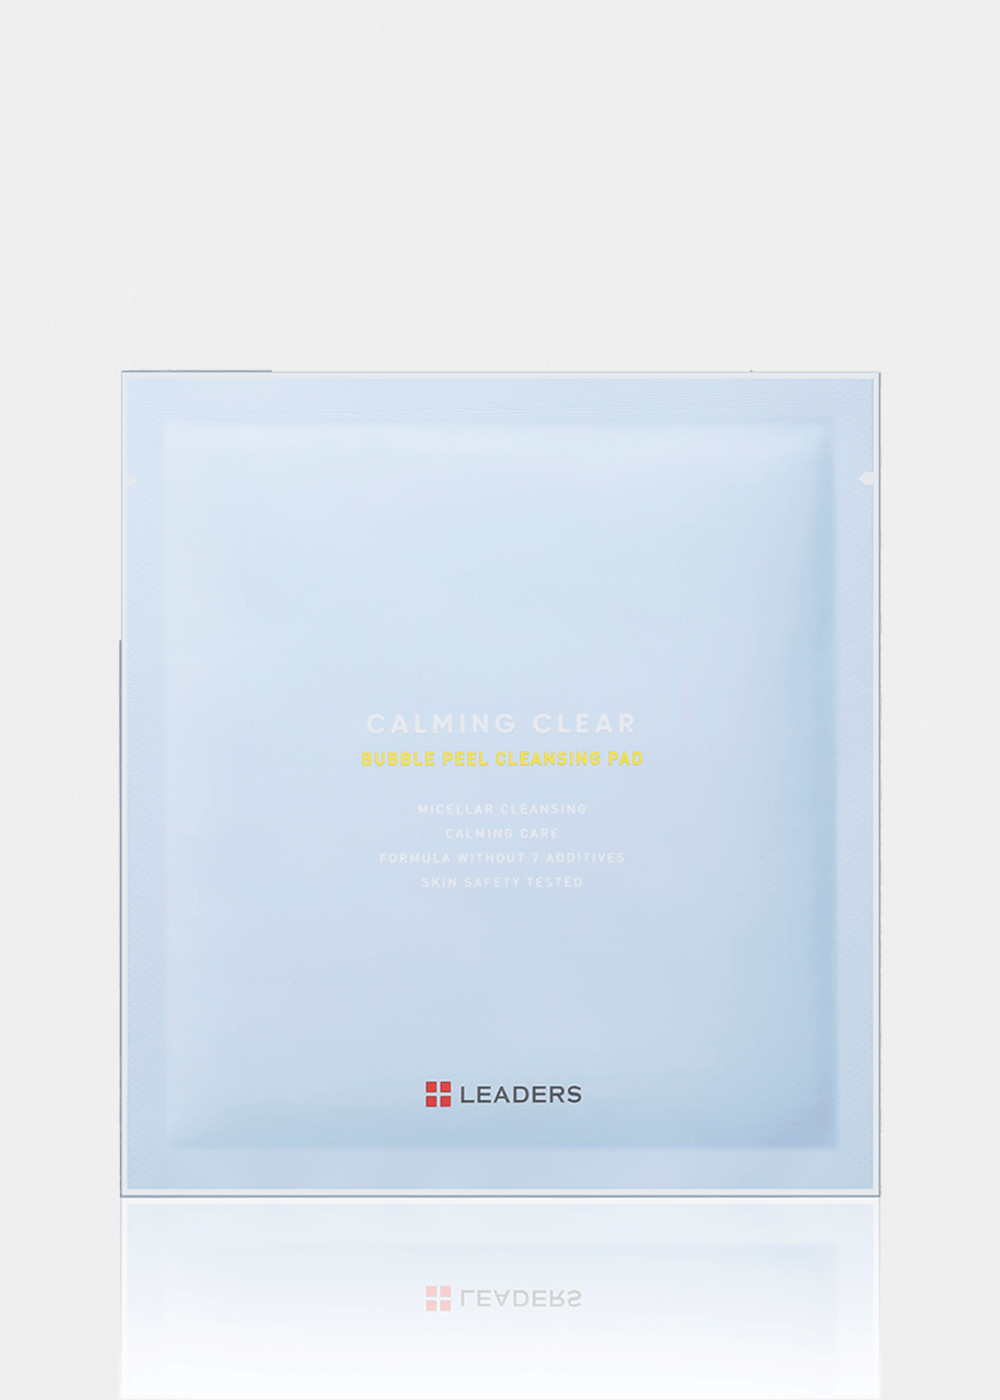 kollab-Leaders-Calming-Clear-Bubble-Peel-Cleansing-Pad-5-un--9-